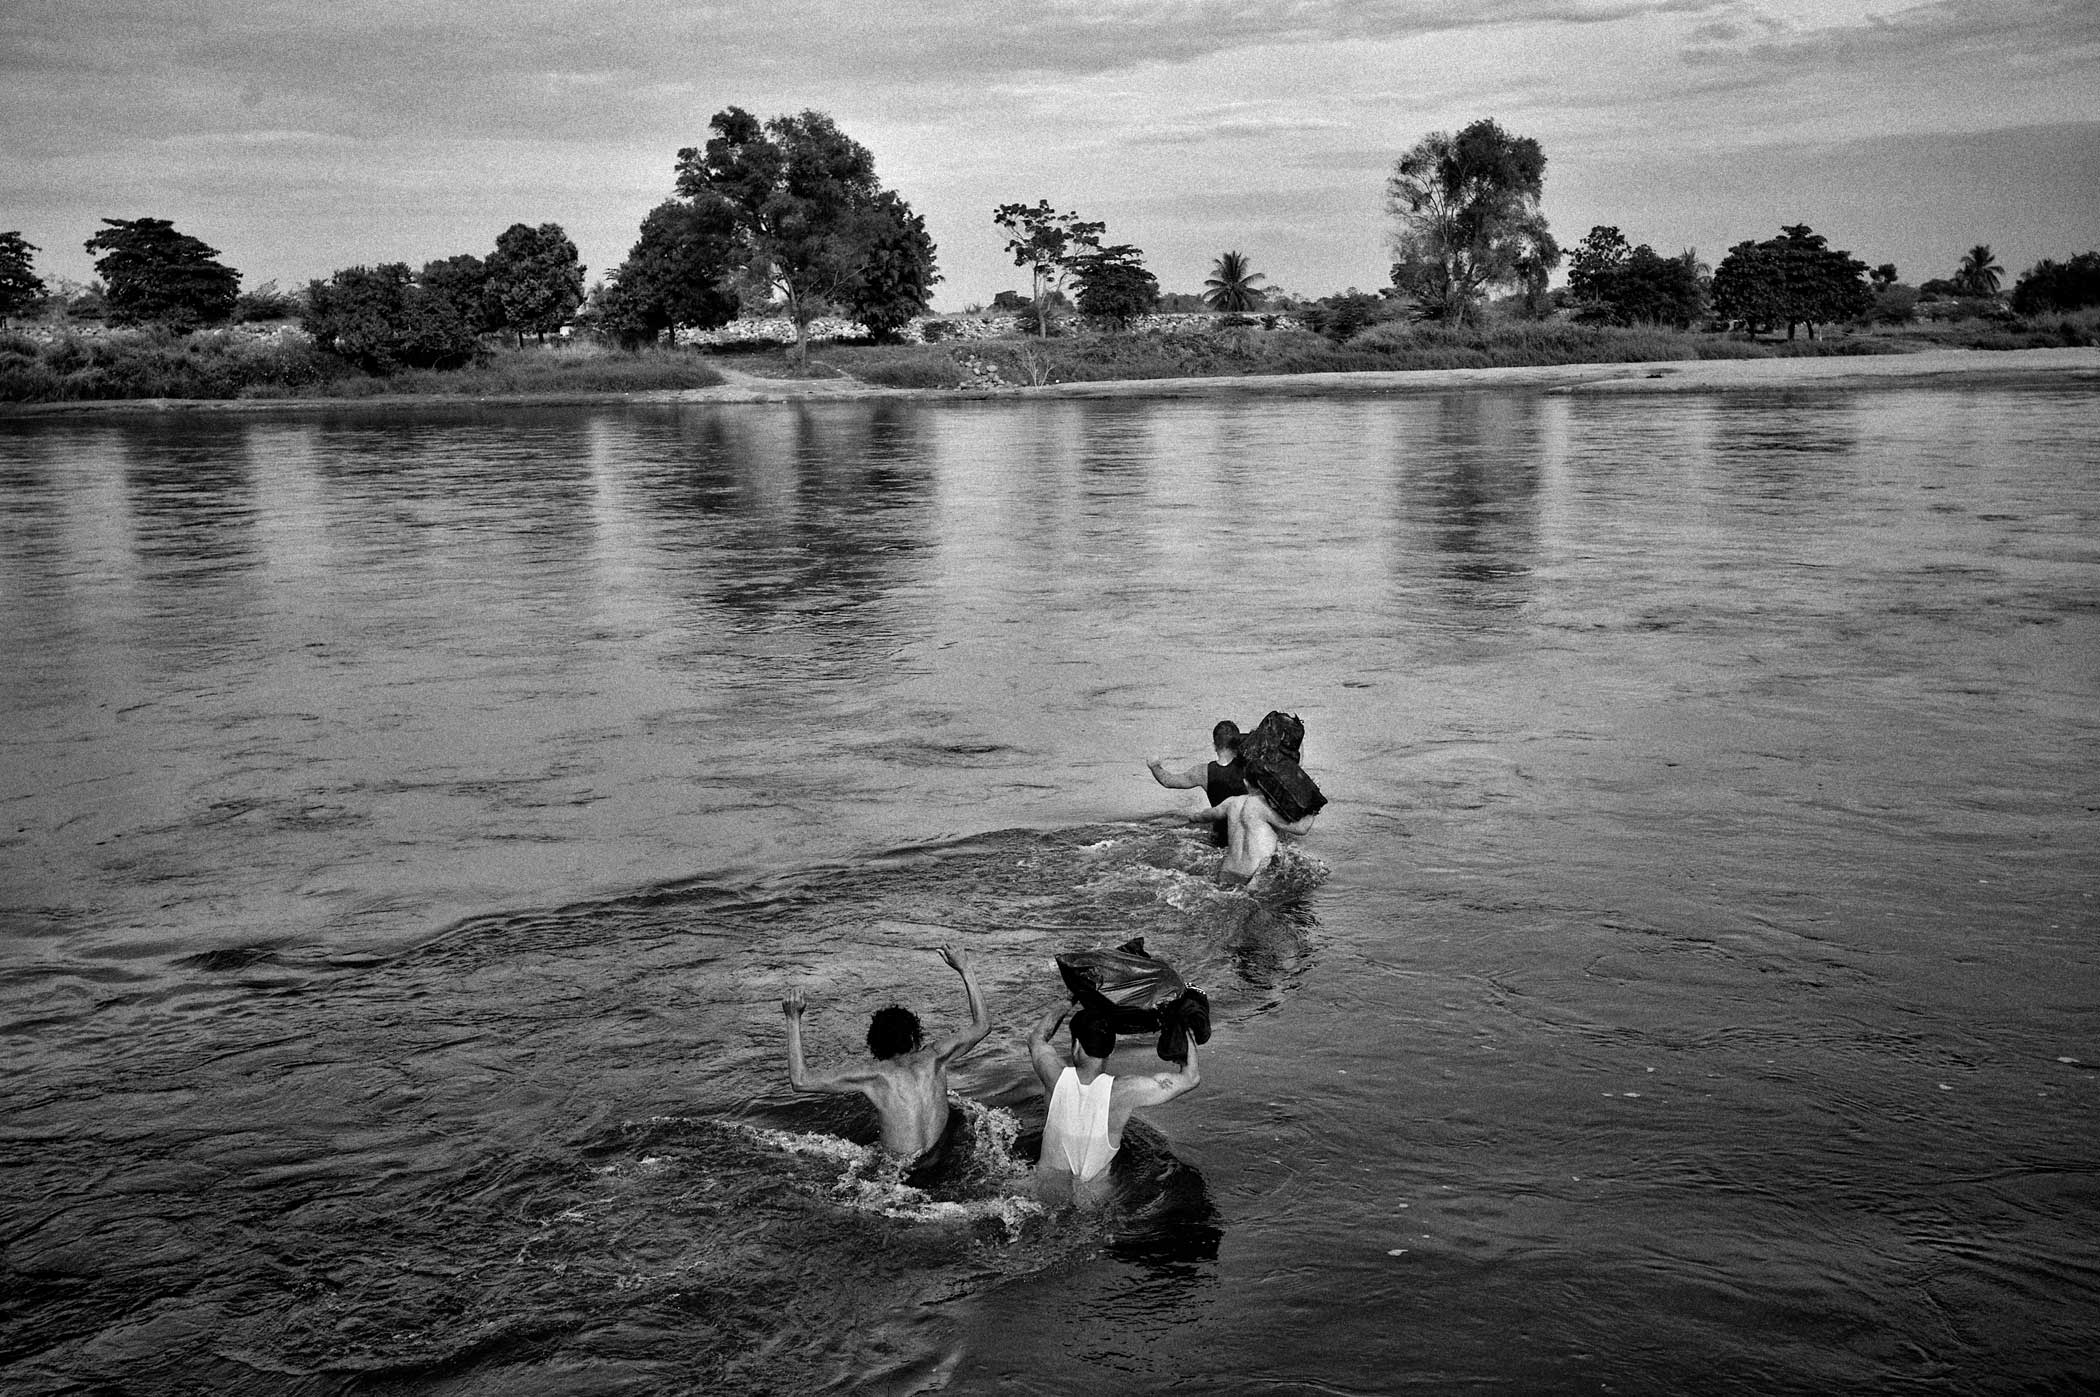 Wilmer Arias (38),in front, from Honduras is crossing the Suchiate river, the border between Guatemala and Mexico. Wilmer is on his way to Canada. He used to live there before he was deported, his two children still live there and he will try to visit them.